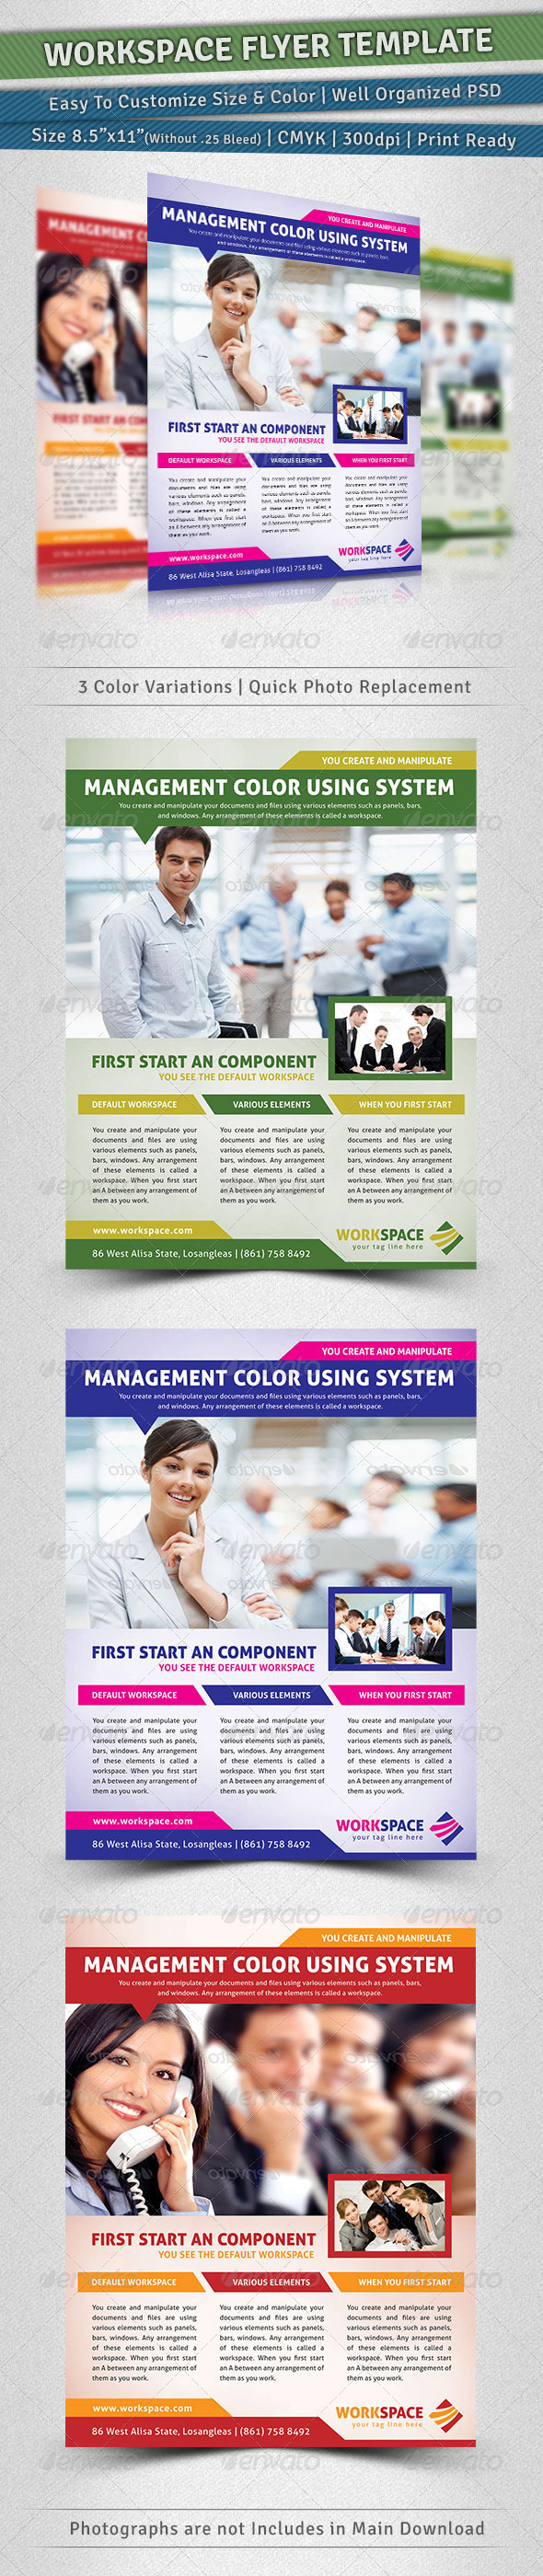 GraphicRiver Workspace Flyer Template 3517311